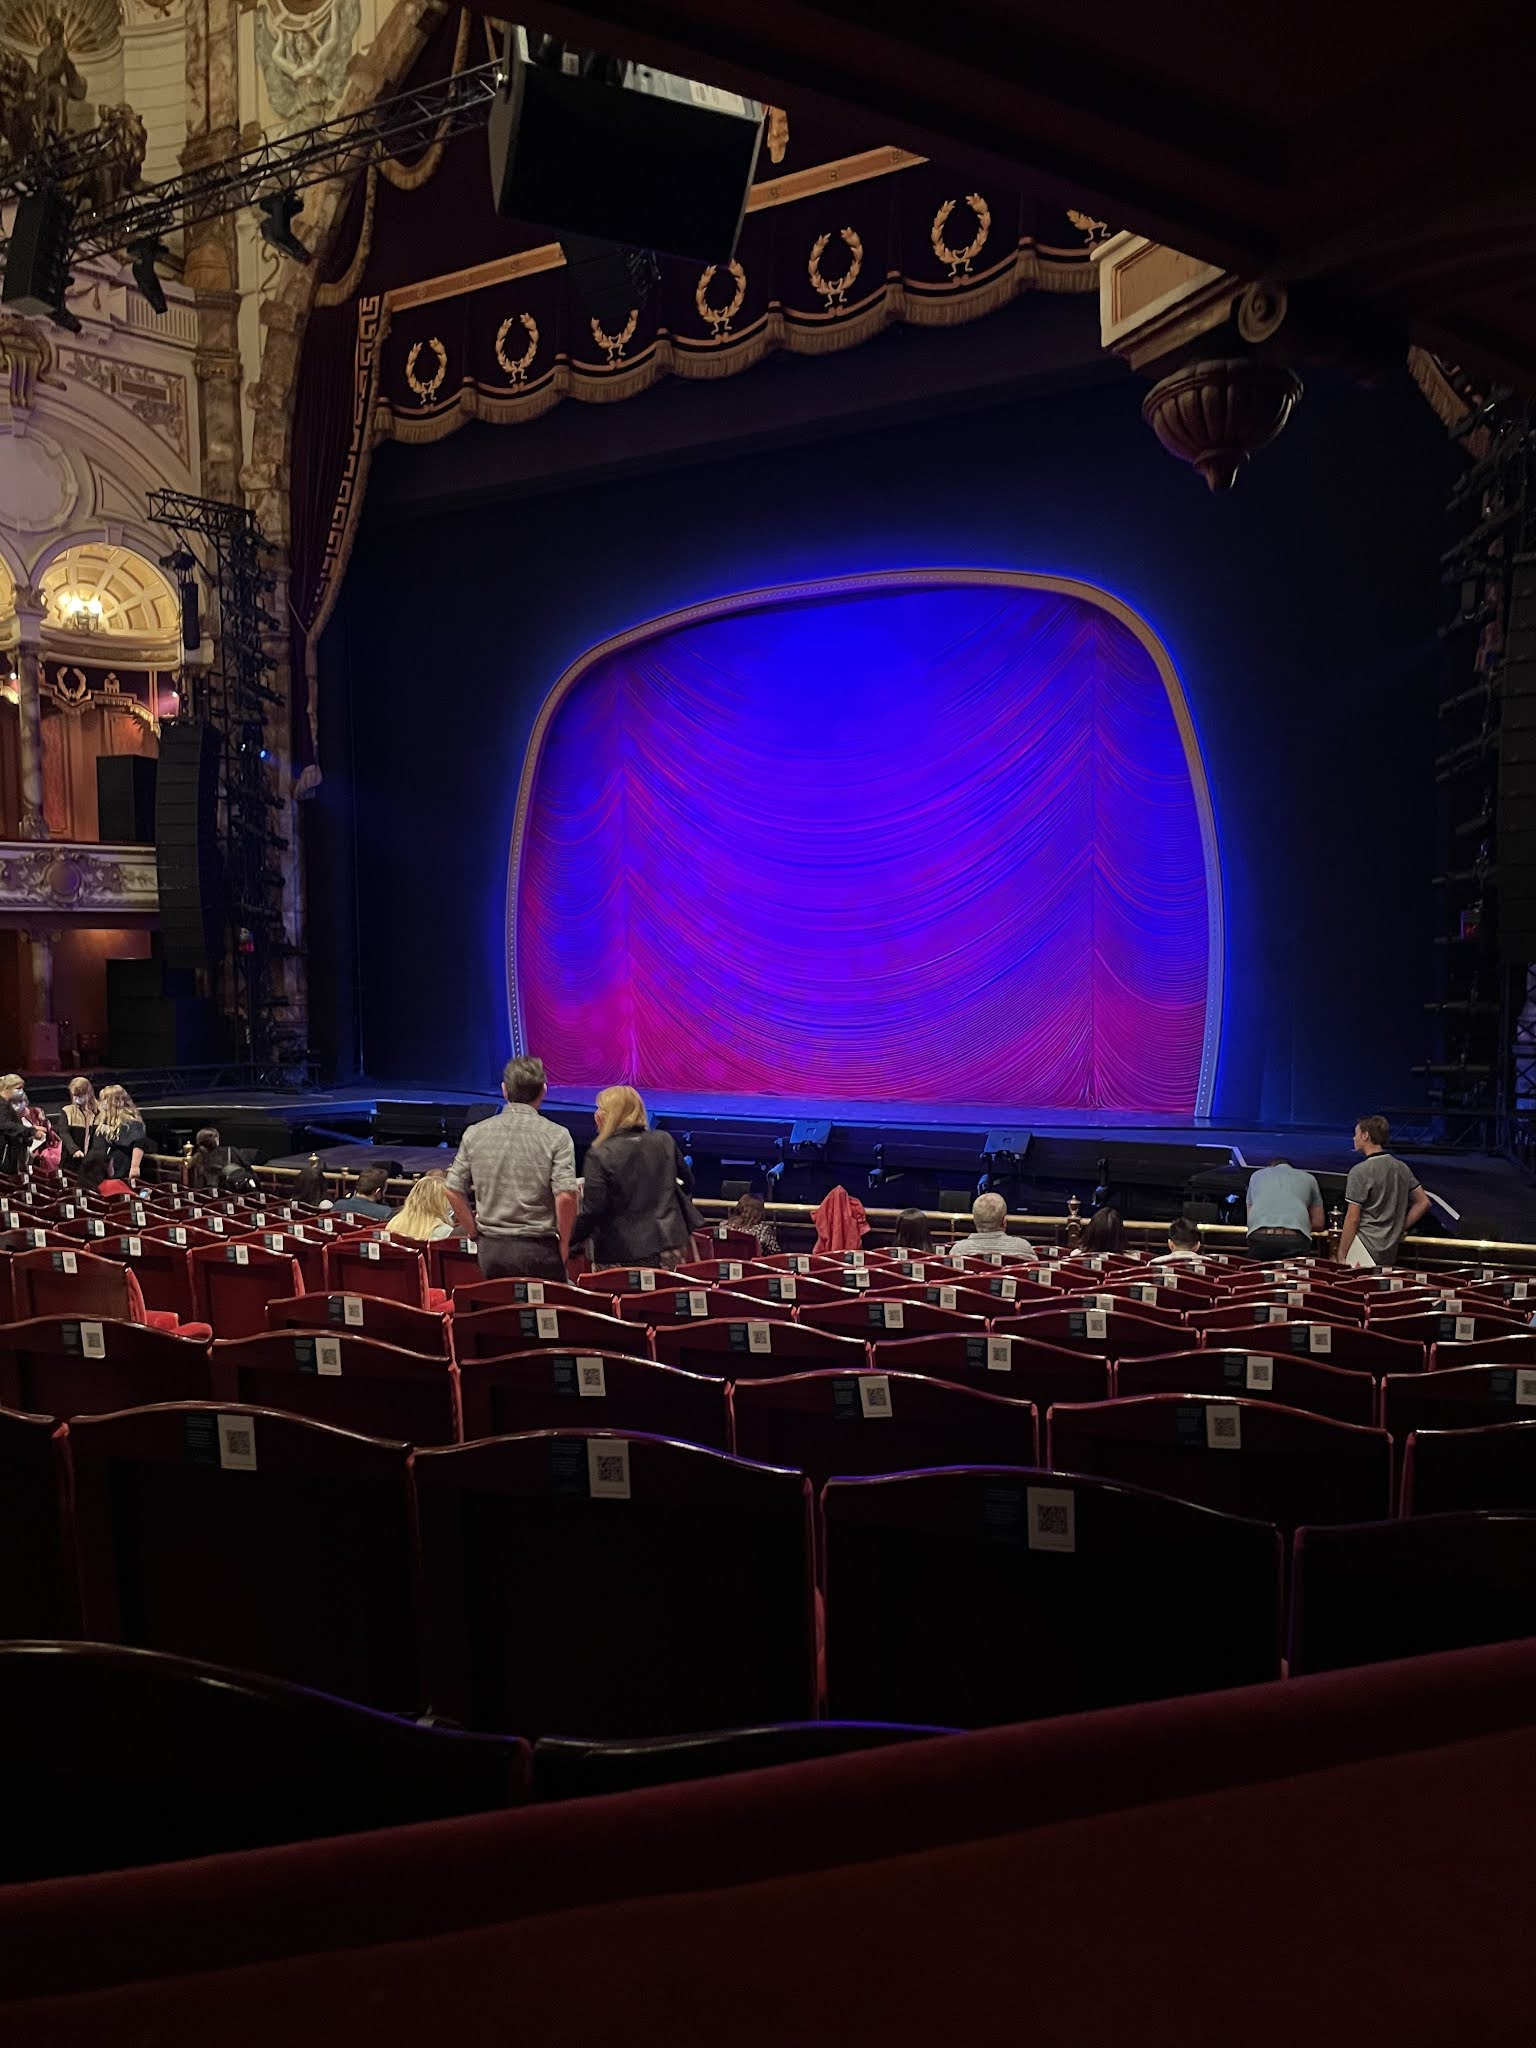 The view from stalls box G at the London Coliseum. The stage is lit up purple and are a few people taking their seats.